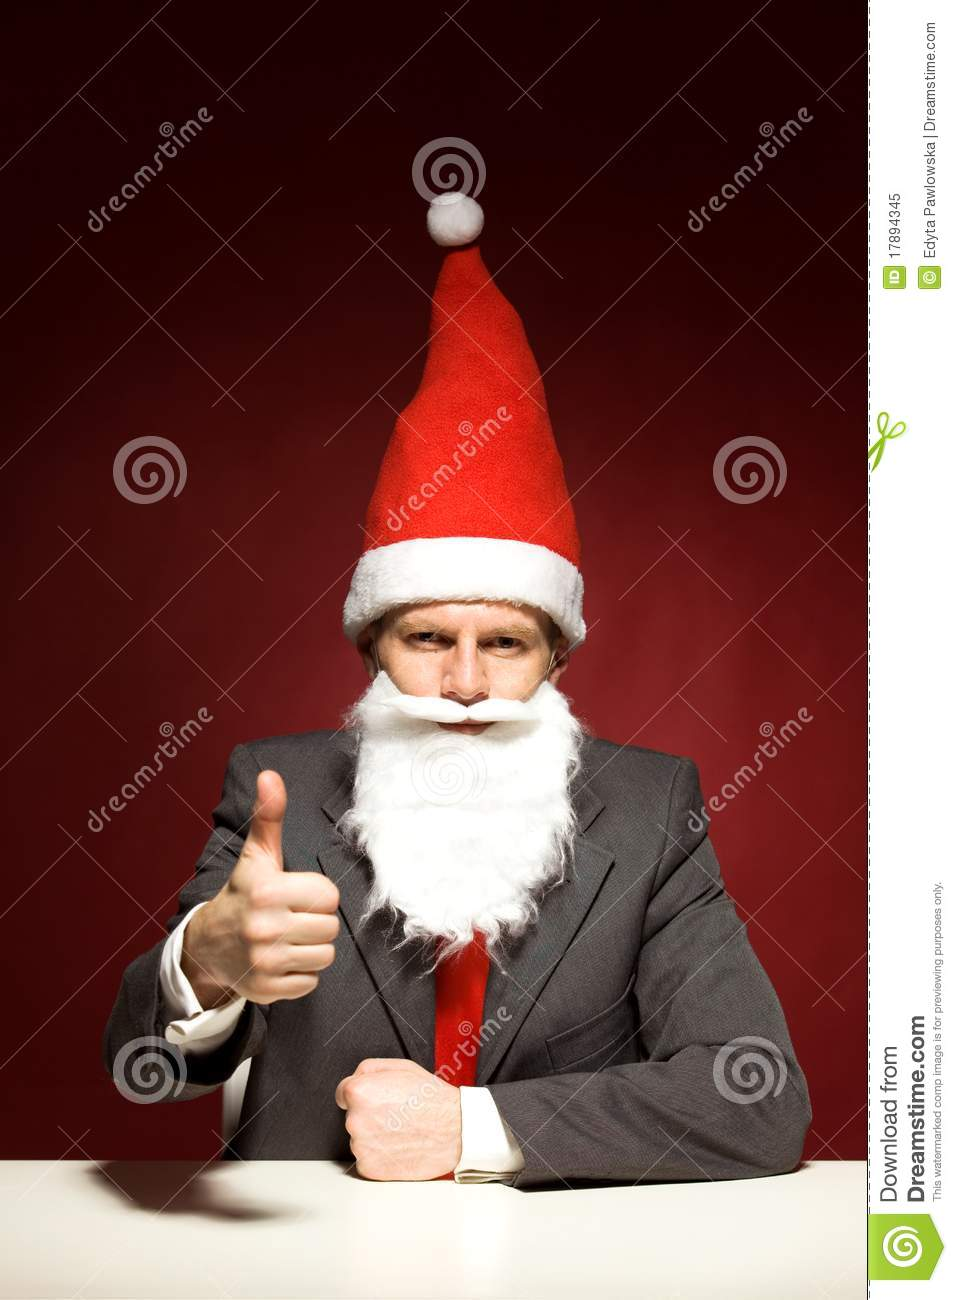 Funny Santa Showing Thumbs Up Royalty Free Stock Photo